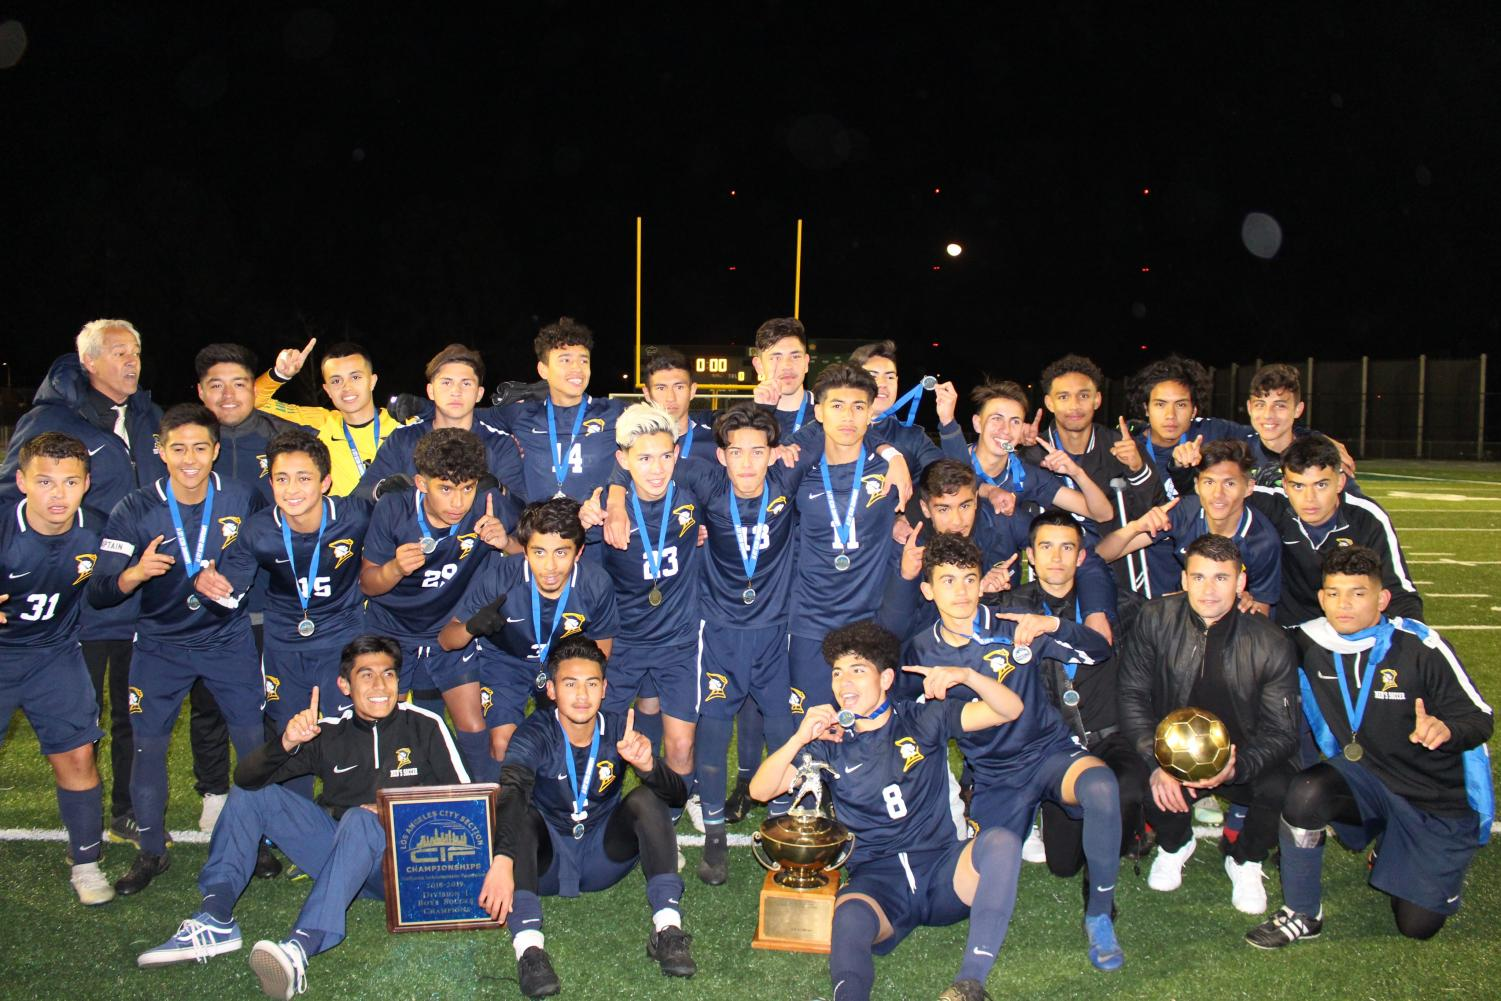 The BCCHS Soccer Team after winning the 2019 City Championship.